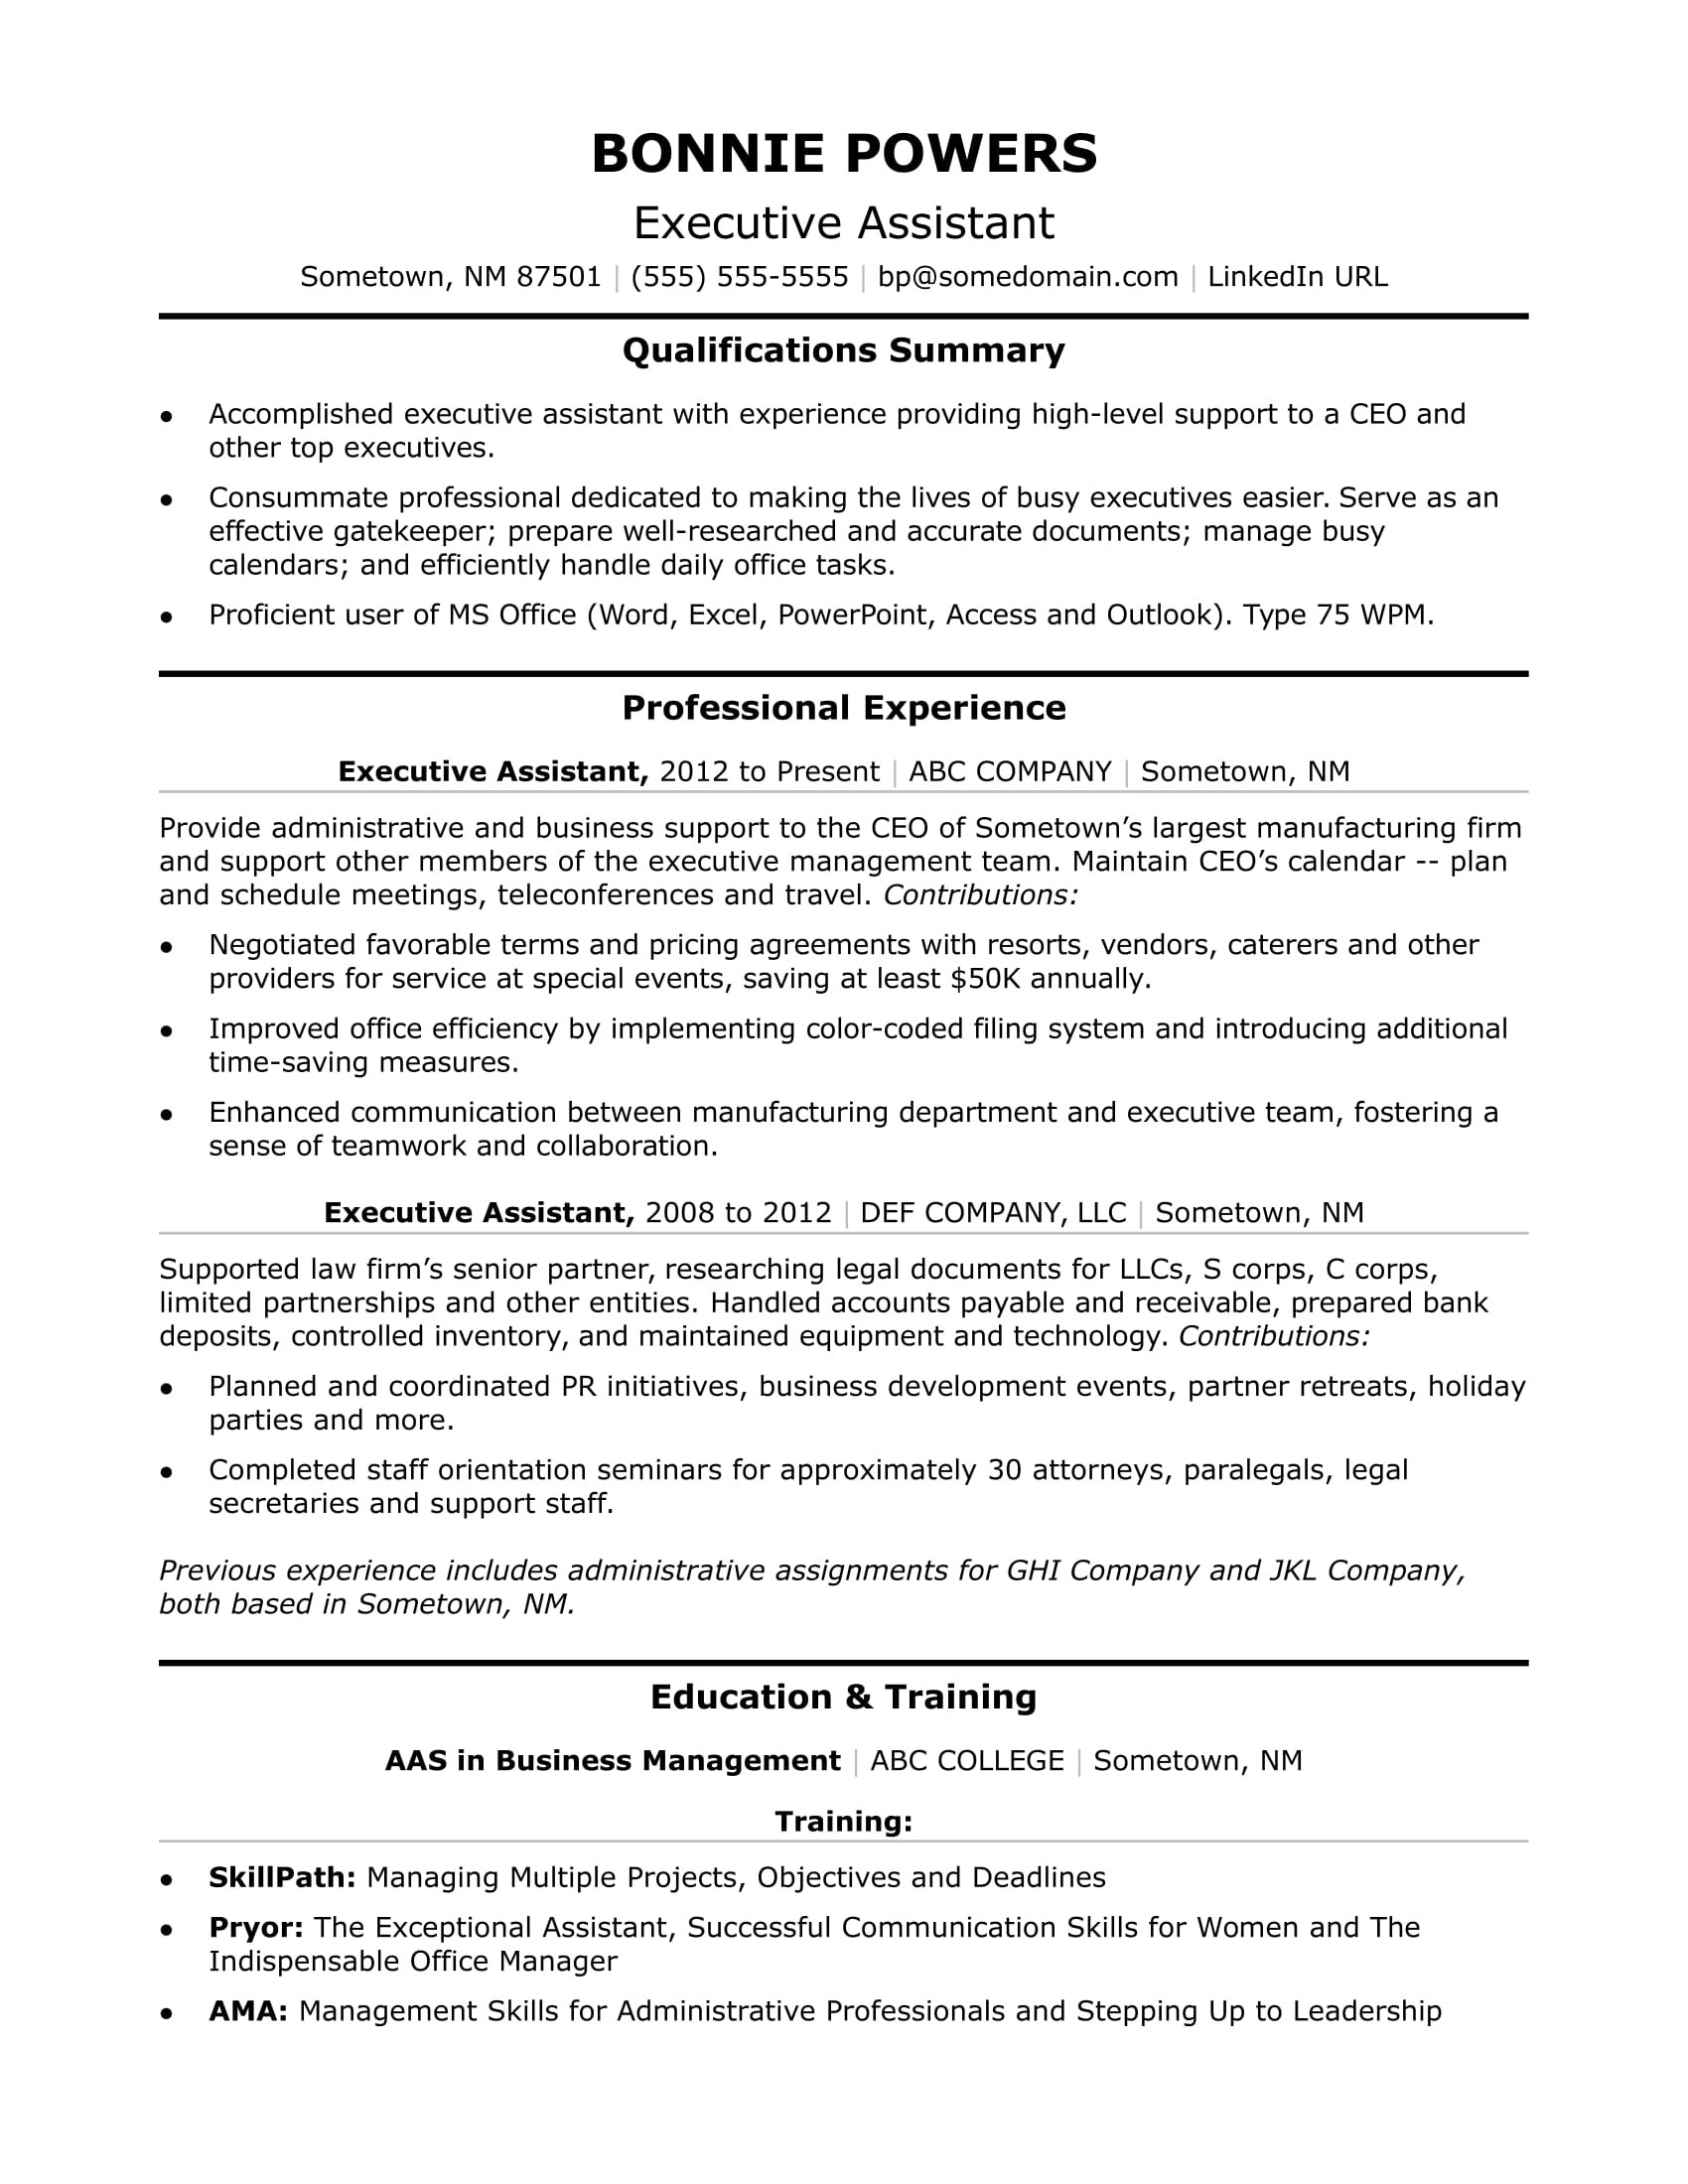 Sample Resume for Personal assistant to Ceo Executive Administrative assistant Resume Sample Monster.com